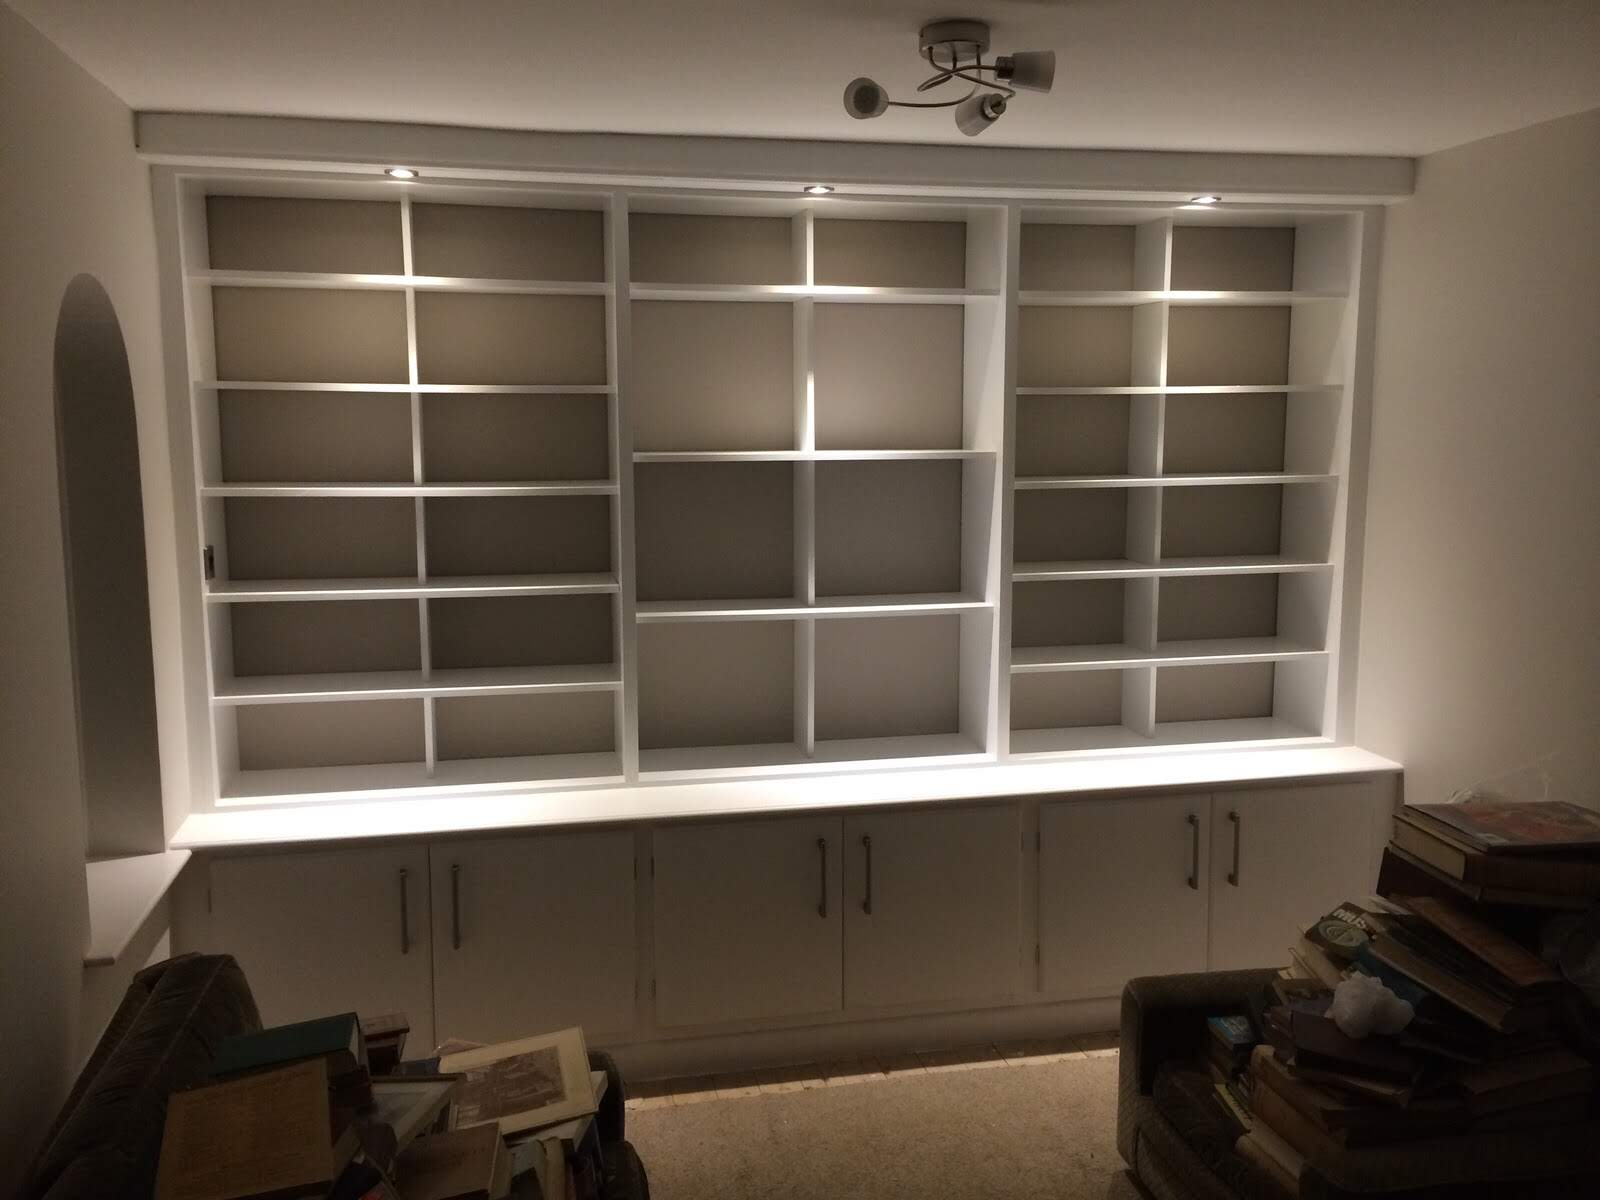 Bespoke shelving and cupboards